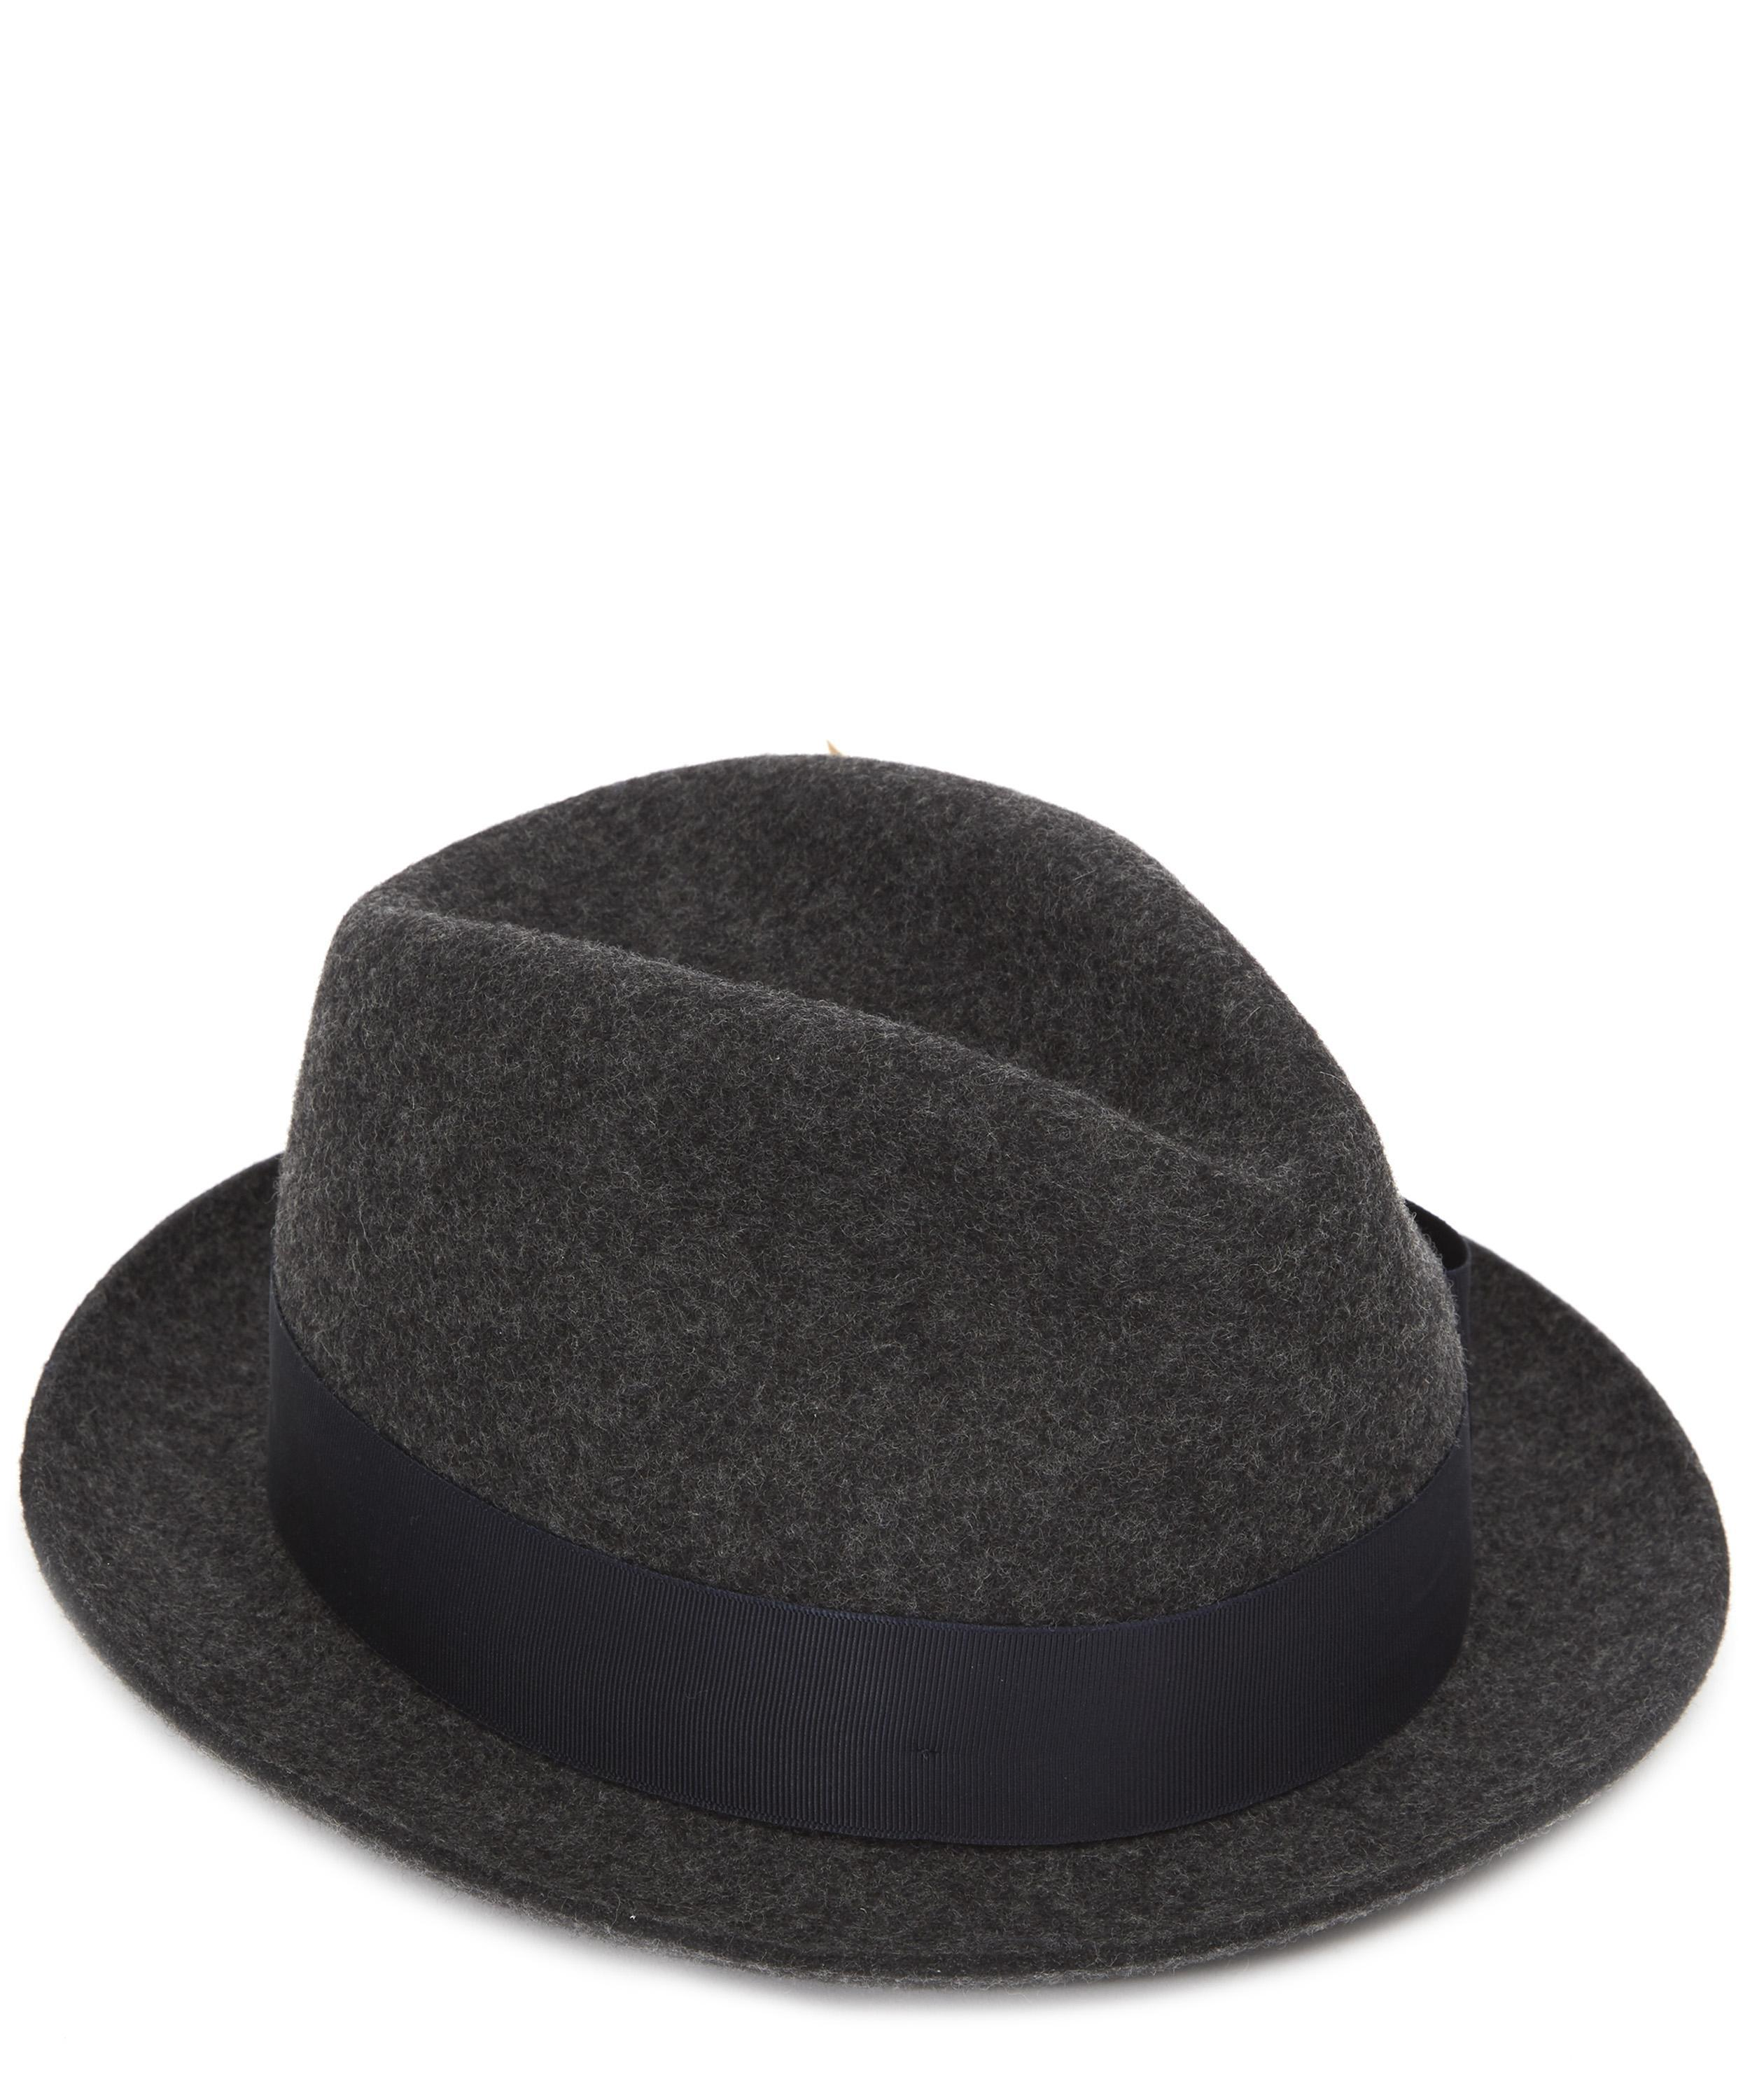 e5cce5e61aff9e Paul Smith Wool-felt Feather Trilby Hat in Gray for Men - Lyst